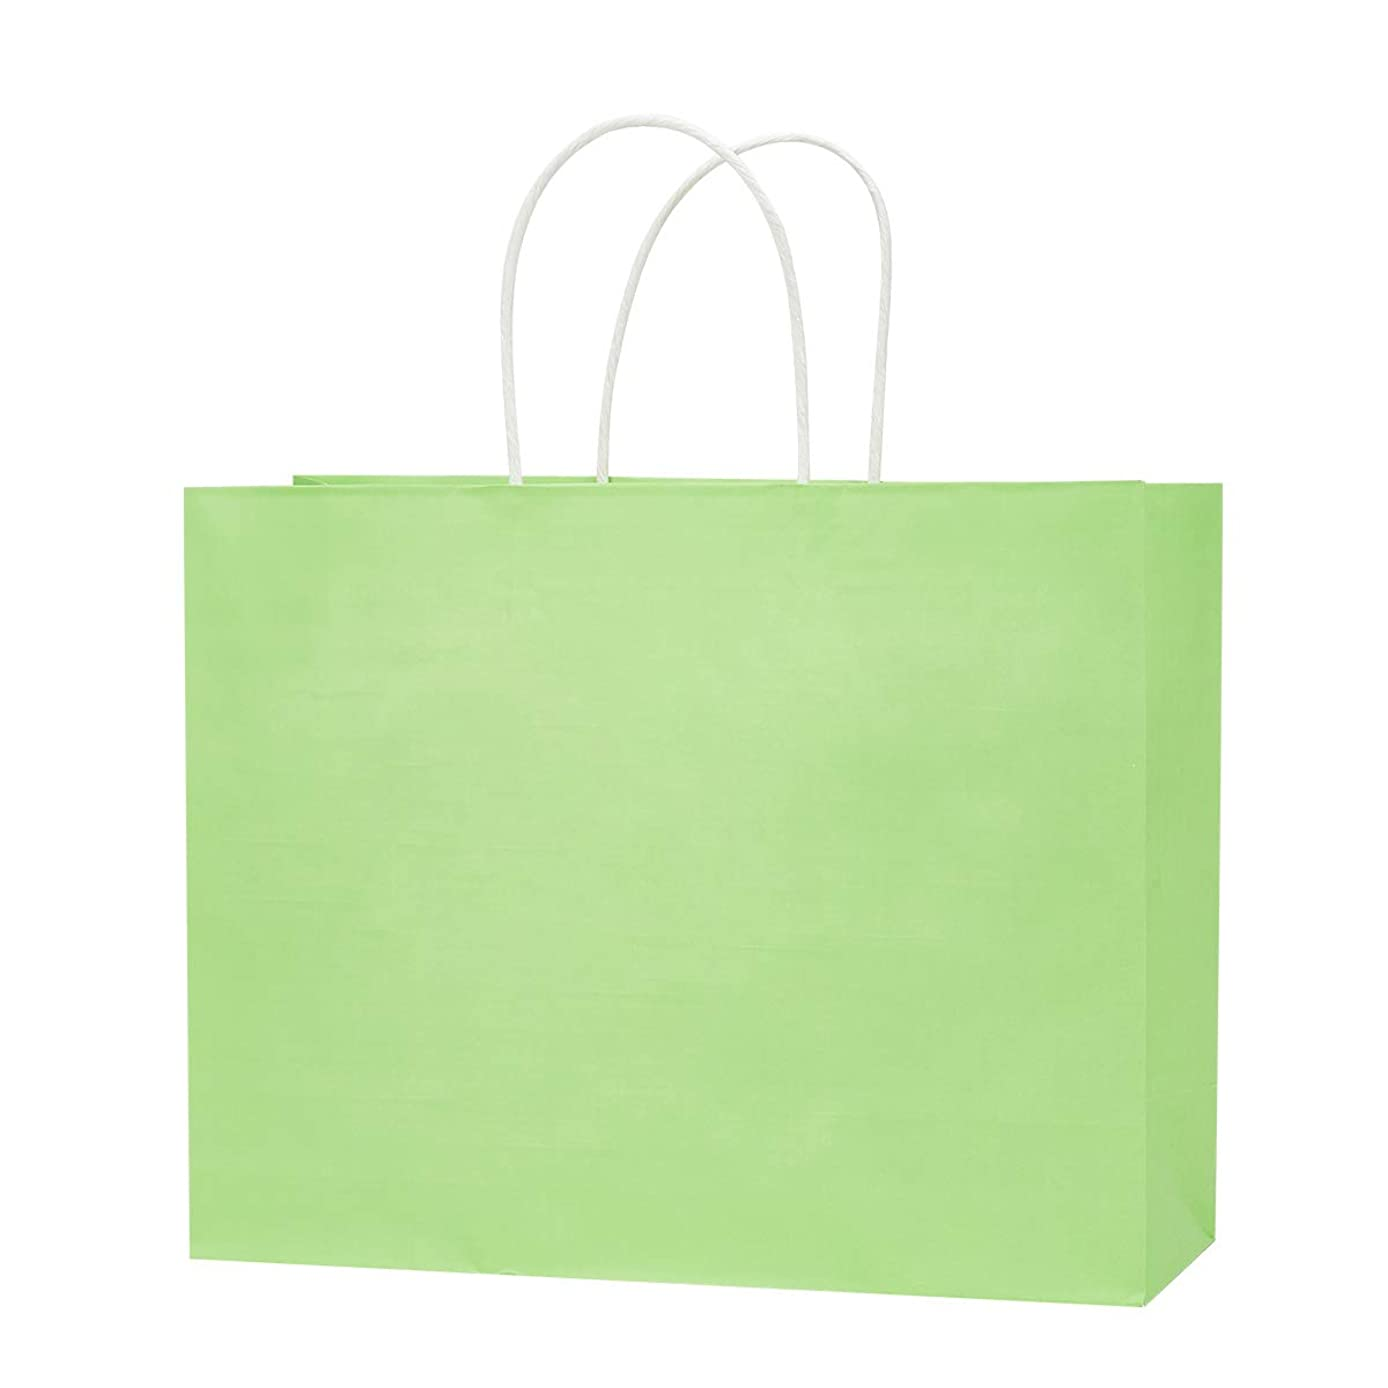 "12.6""x4.3""x9.85"" White Kraft Paper Shopping Bags, Colorful Gift,Party, Wedding, Merchandise, Carry, Retail, Restaurant takeouts,Paper Bags 50pcs/ 100pcs (Apple Green, 50 PCS)"